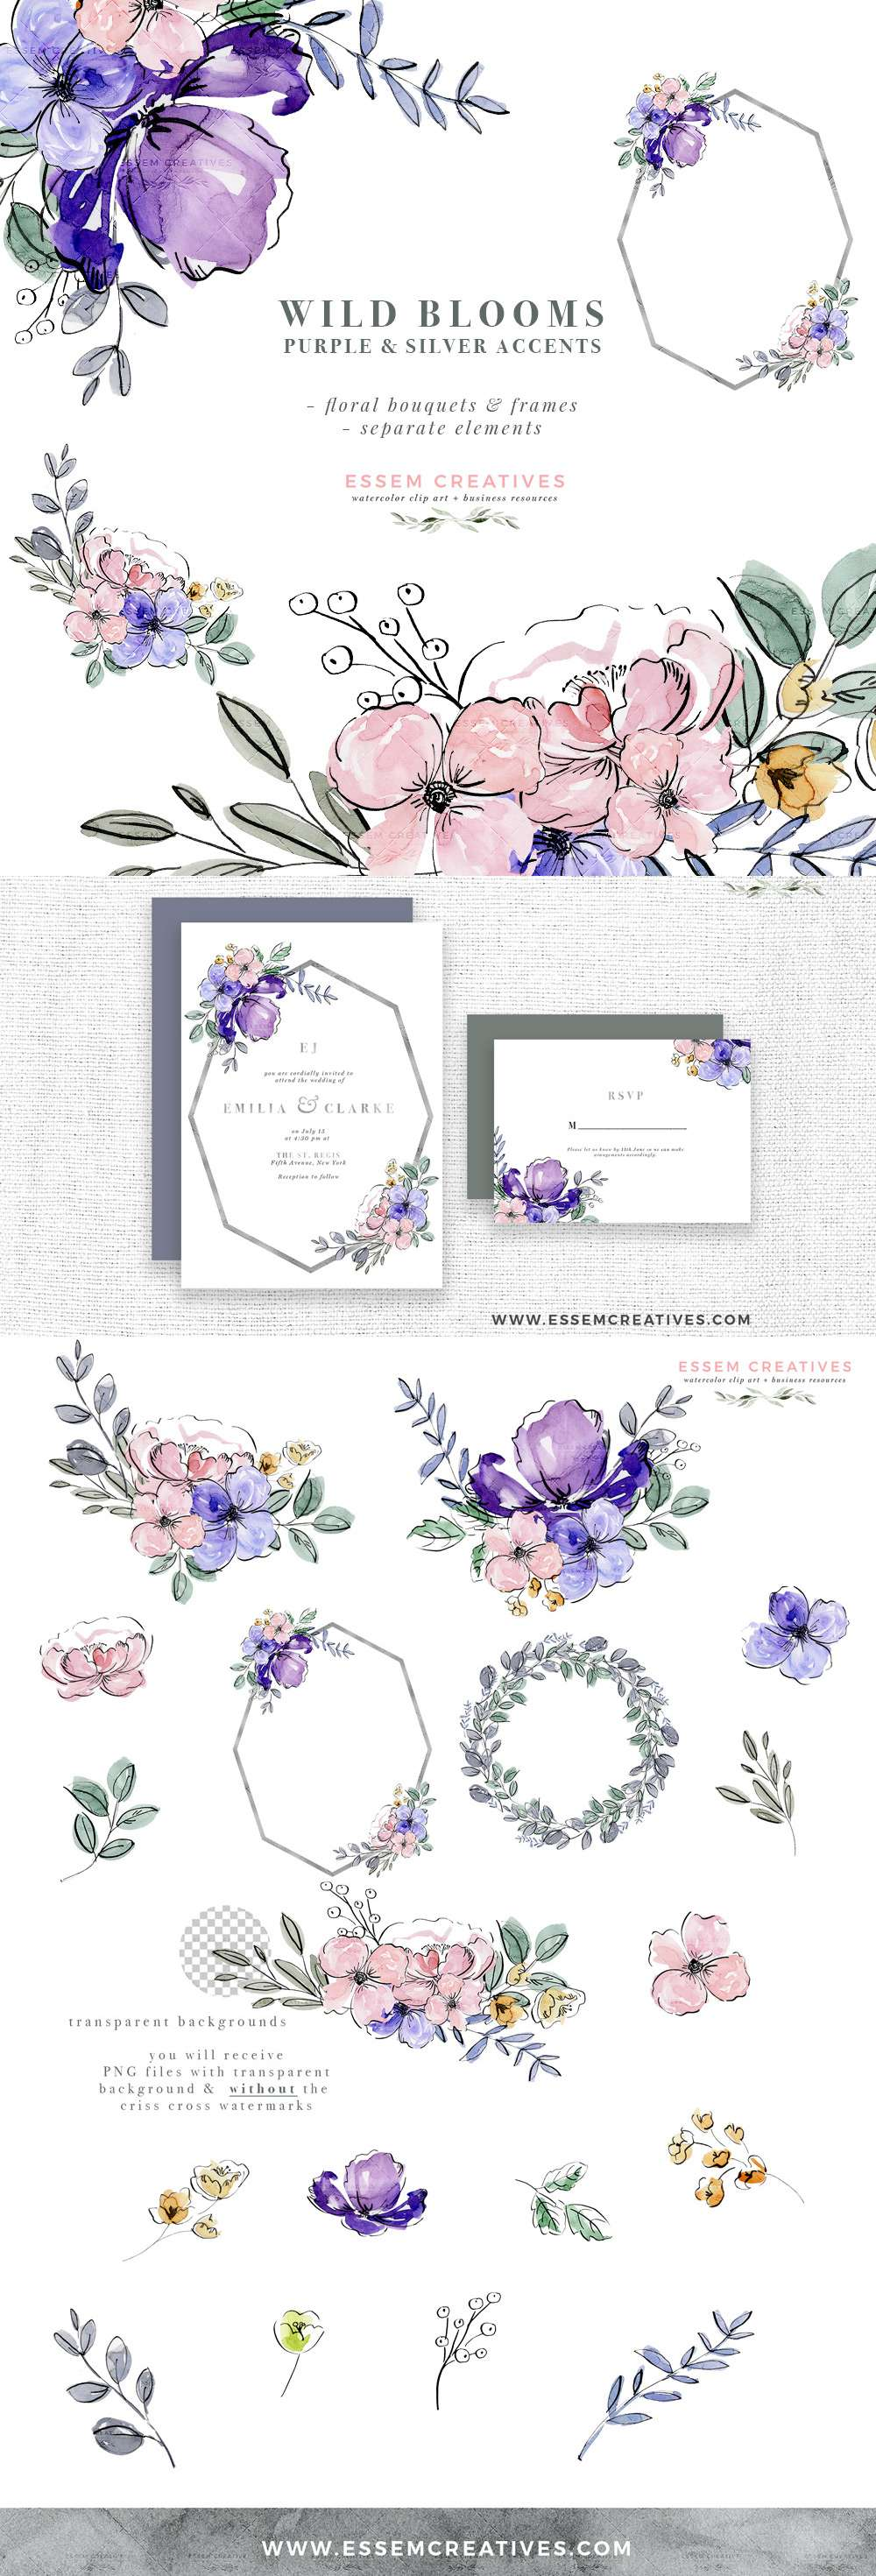 Purple Watercolor Flowers Clip Art, Silver Violet Lavender Floral Graphics Frames Bouquets PNG | Wild Blooms stands for nature's bounty in it's untethered form, reminiscent of softly scented meadows swaying with vibrant blue bells, wildflowers and may flowers | Boho chic wedding invitation 2019 2020 2021, bohemian outdoor wild free spirit theme party invites, purple logo and branding, website header branding, business cards, save the date. Click to see more>> #watercolorart #floralwatercolor